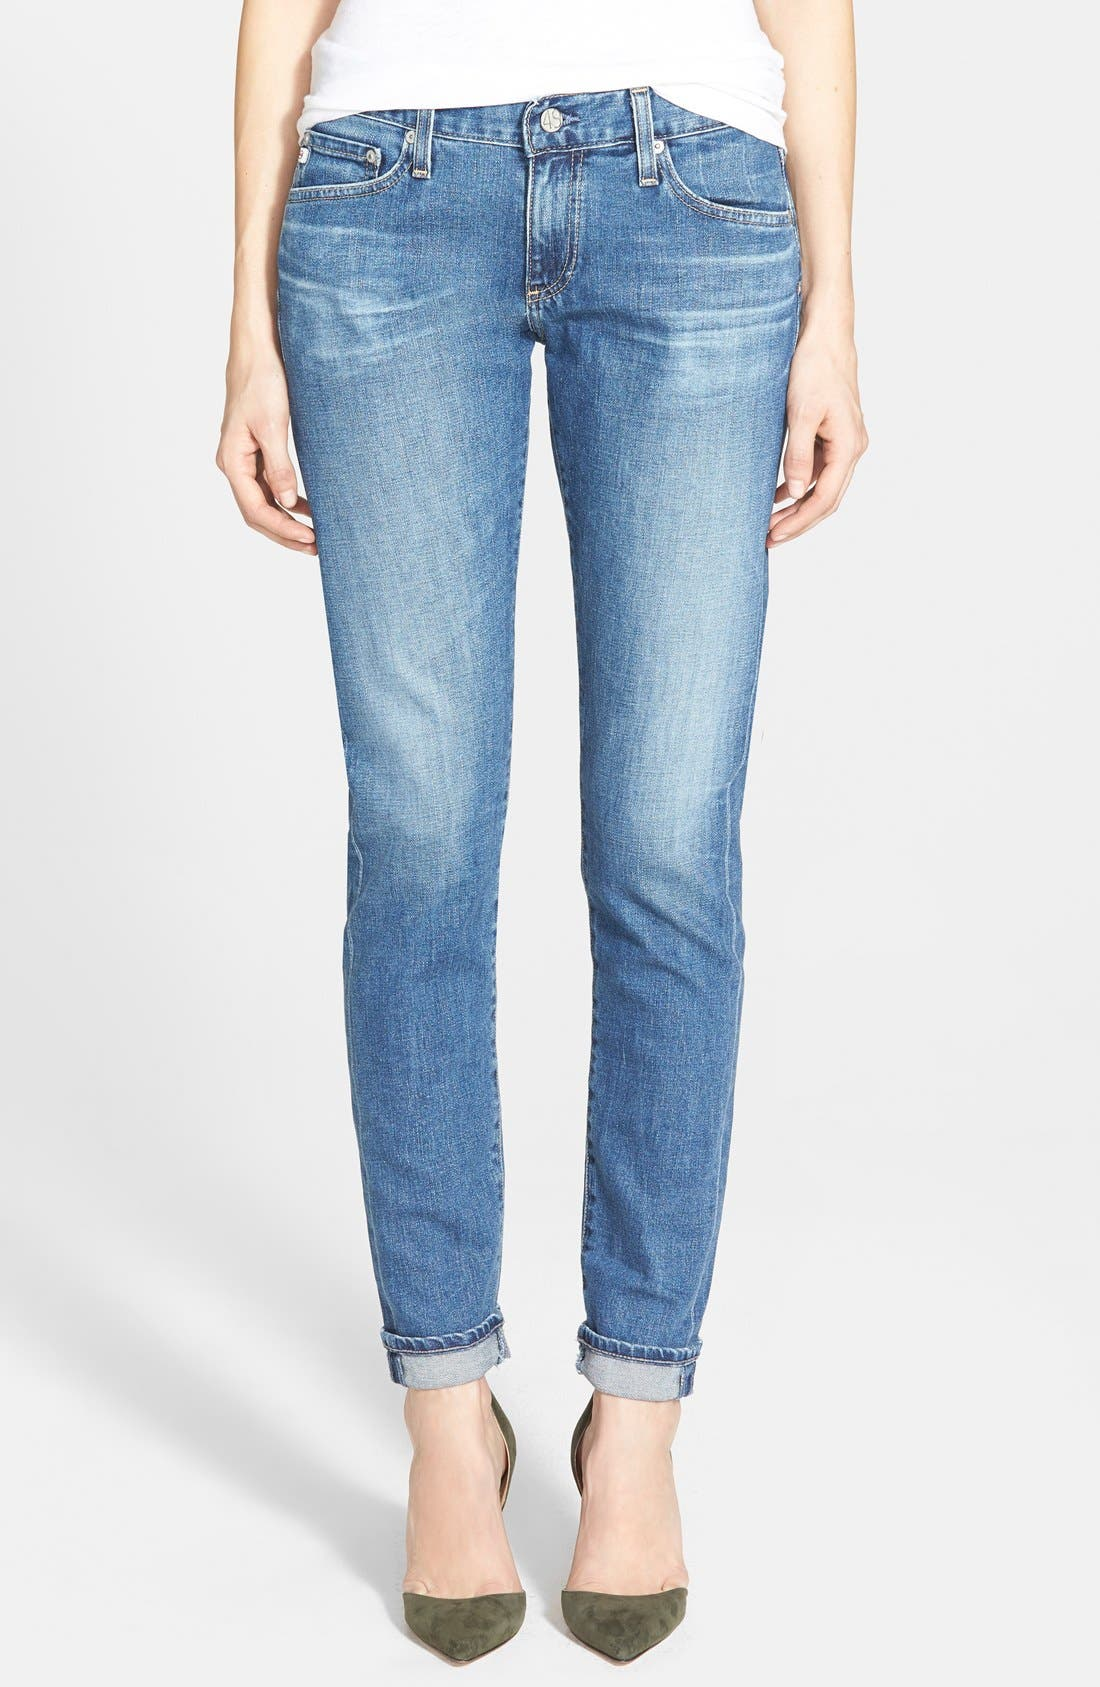 'The Nikki' Relaxed Skinny Jeans,                             Main thumbnail 1, color,                             167